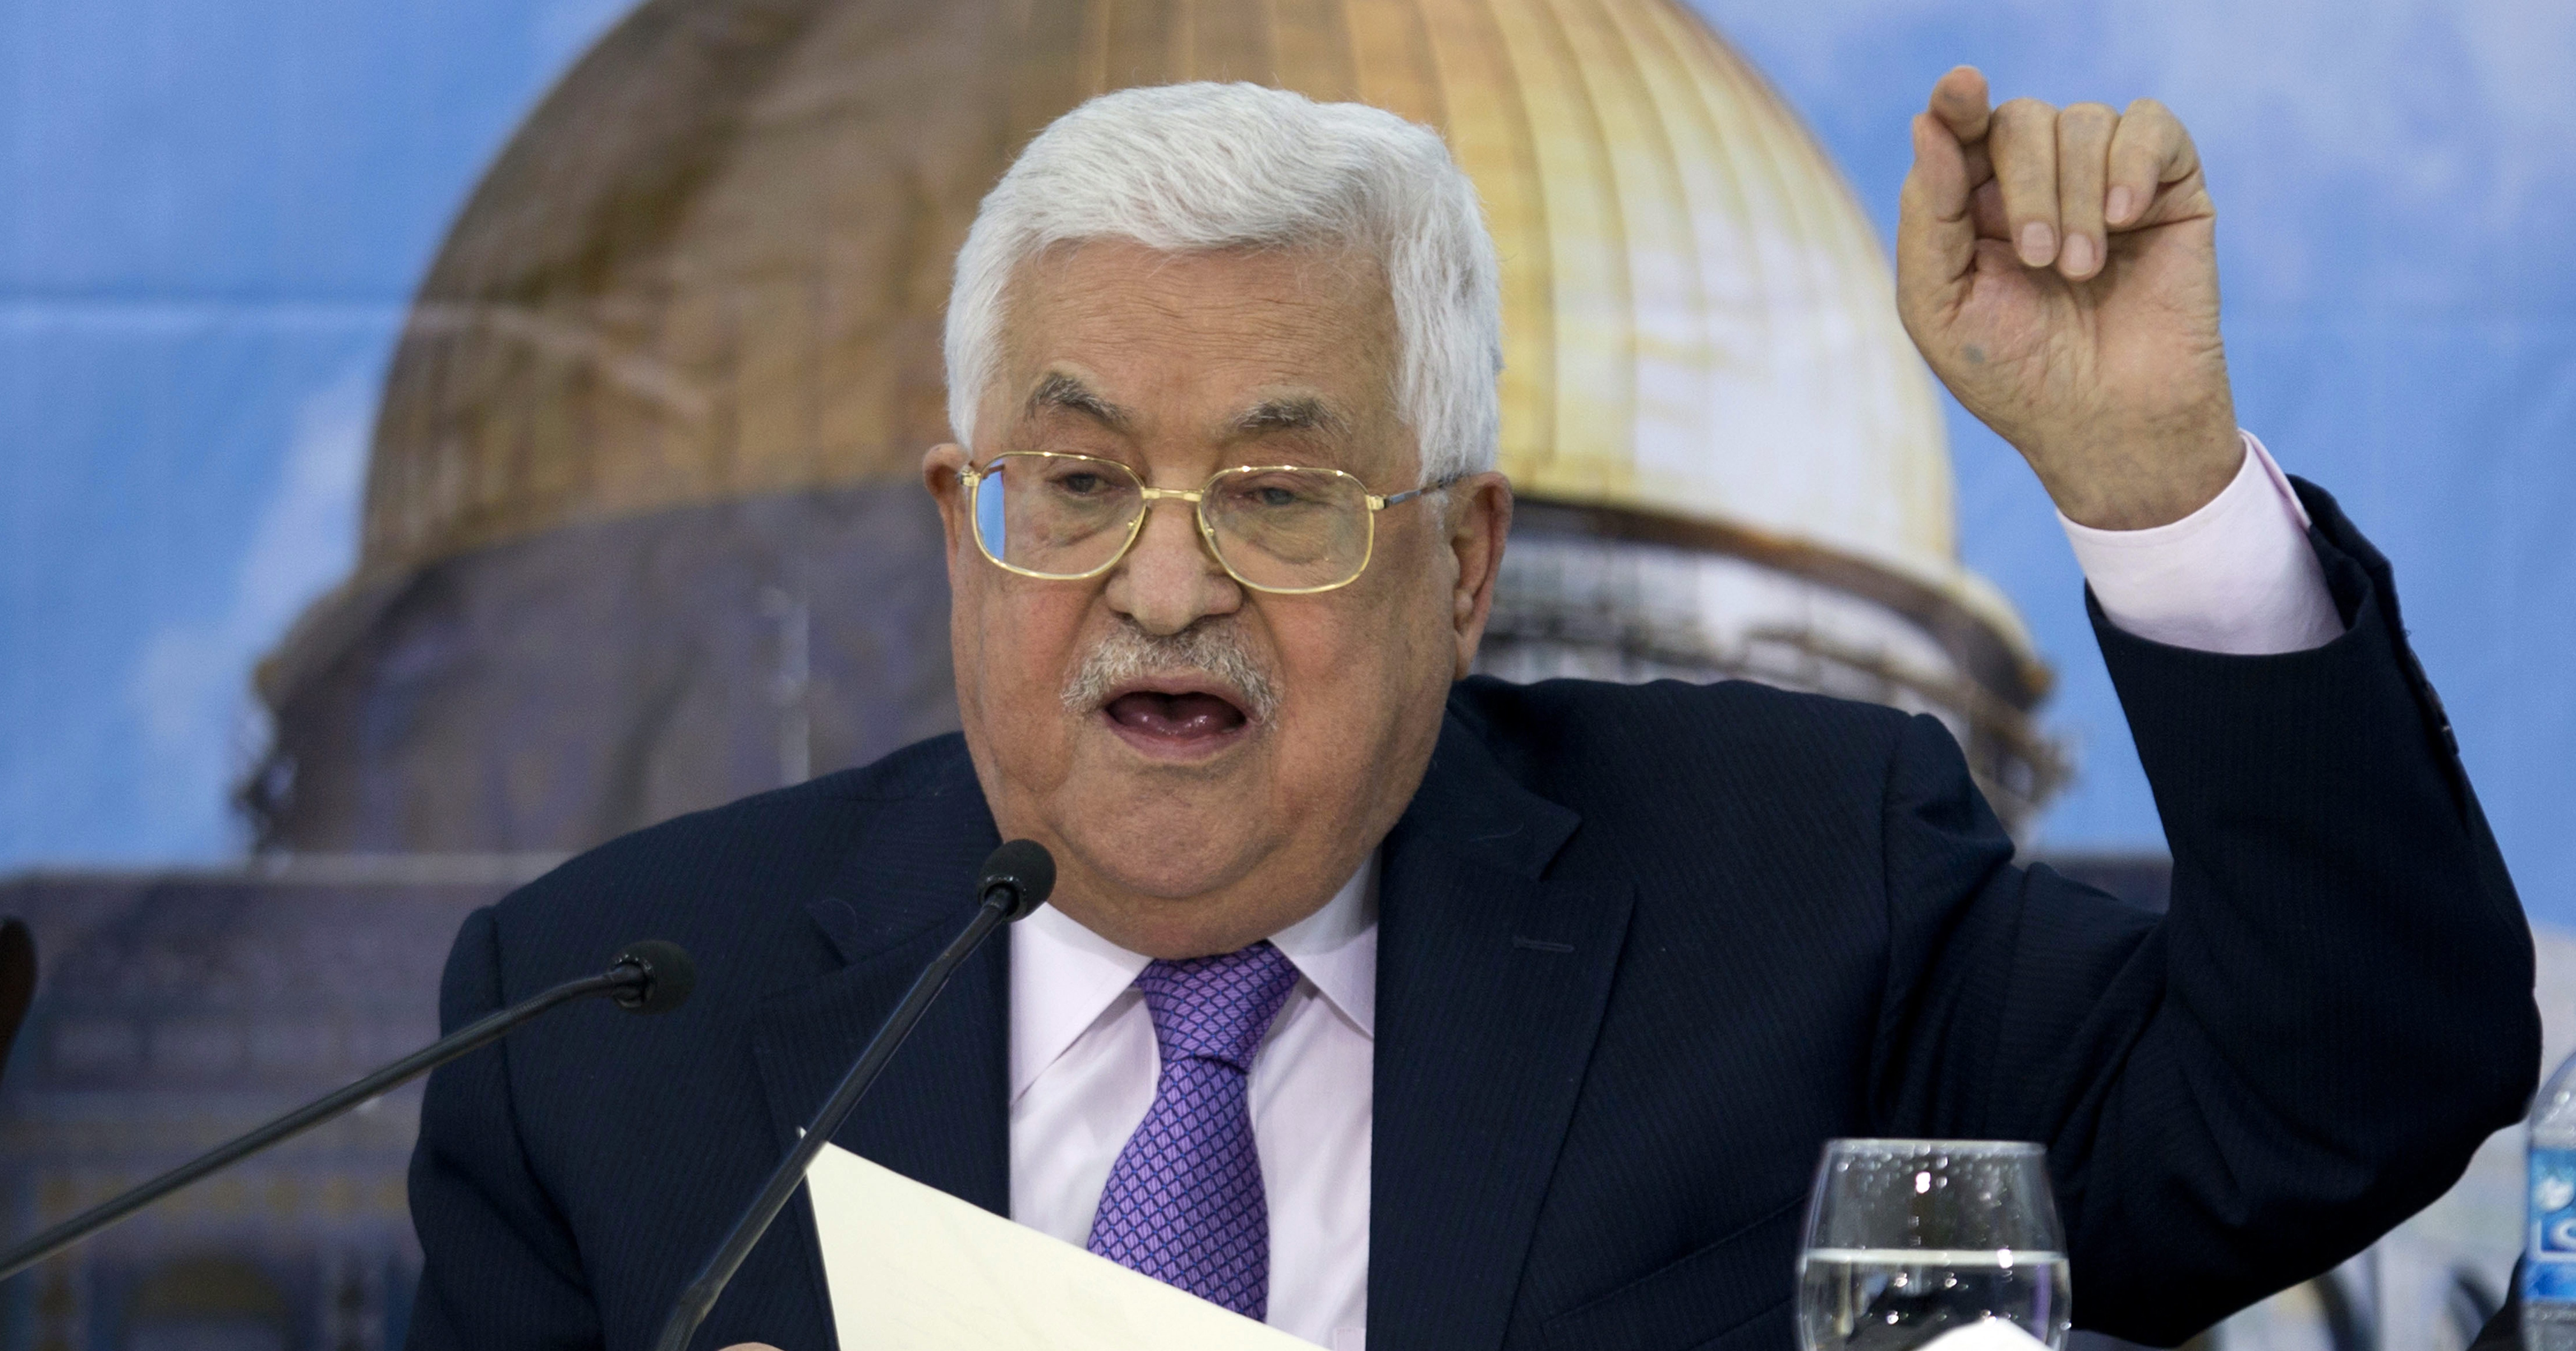 In this Aug. 15 photo, Palestinian President Mahmoud Abbas addresses the Palestinian Central Council at his headquarters in the West Bank city of Ramallah.